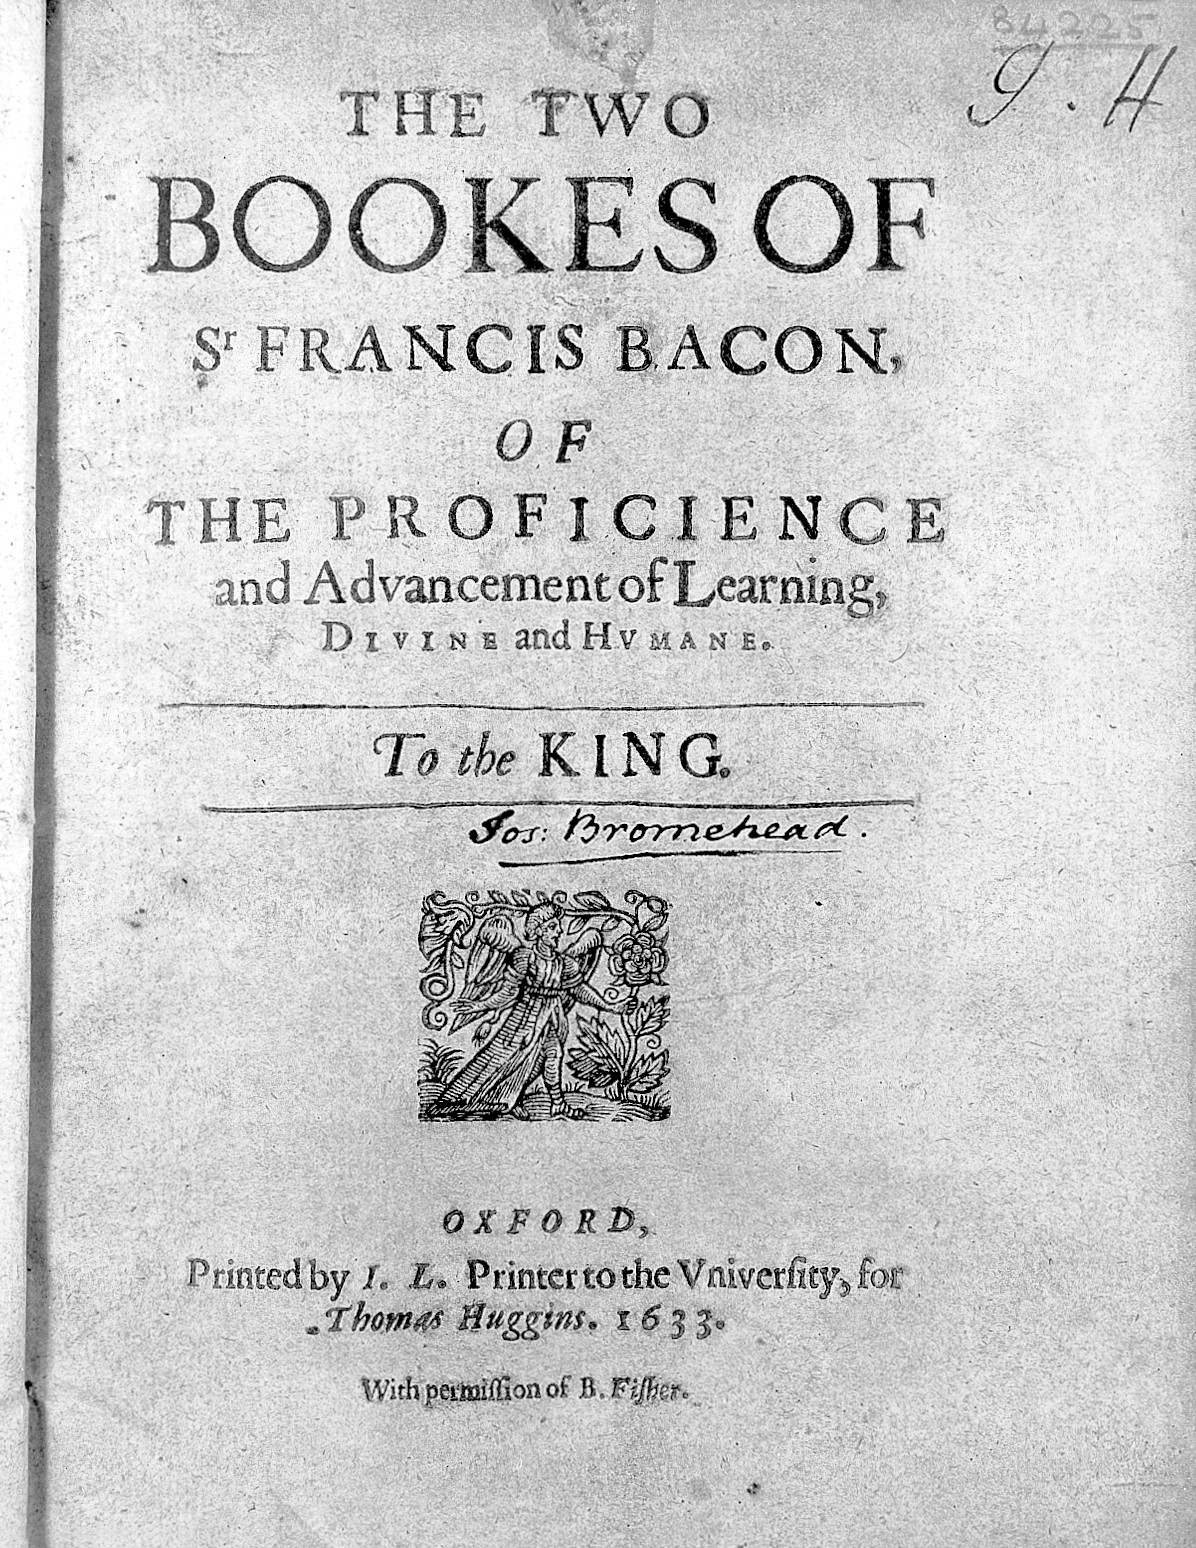 paraphrase essay of studies by francis bacon Then, compare the essay to samuel johnson's treatment of the same theme more than a century later in on studies the life of francis bacon francis bacon is considered a renaissance man.